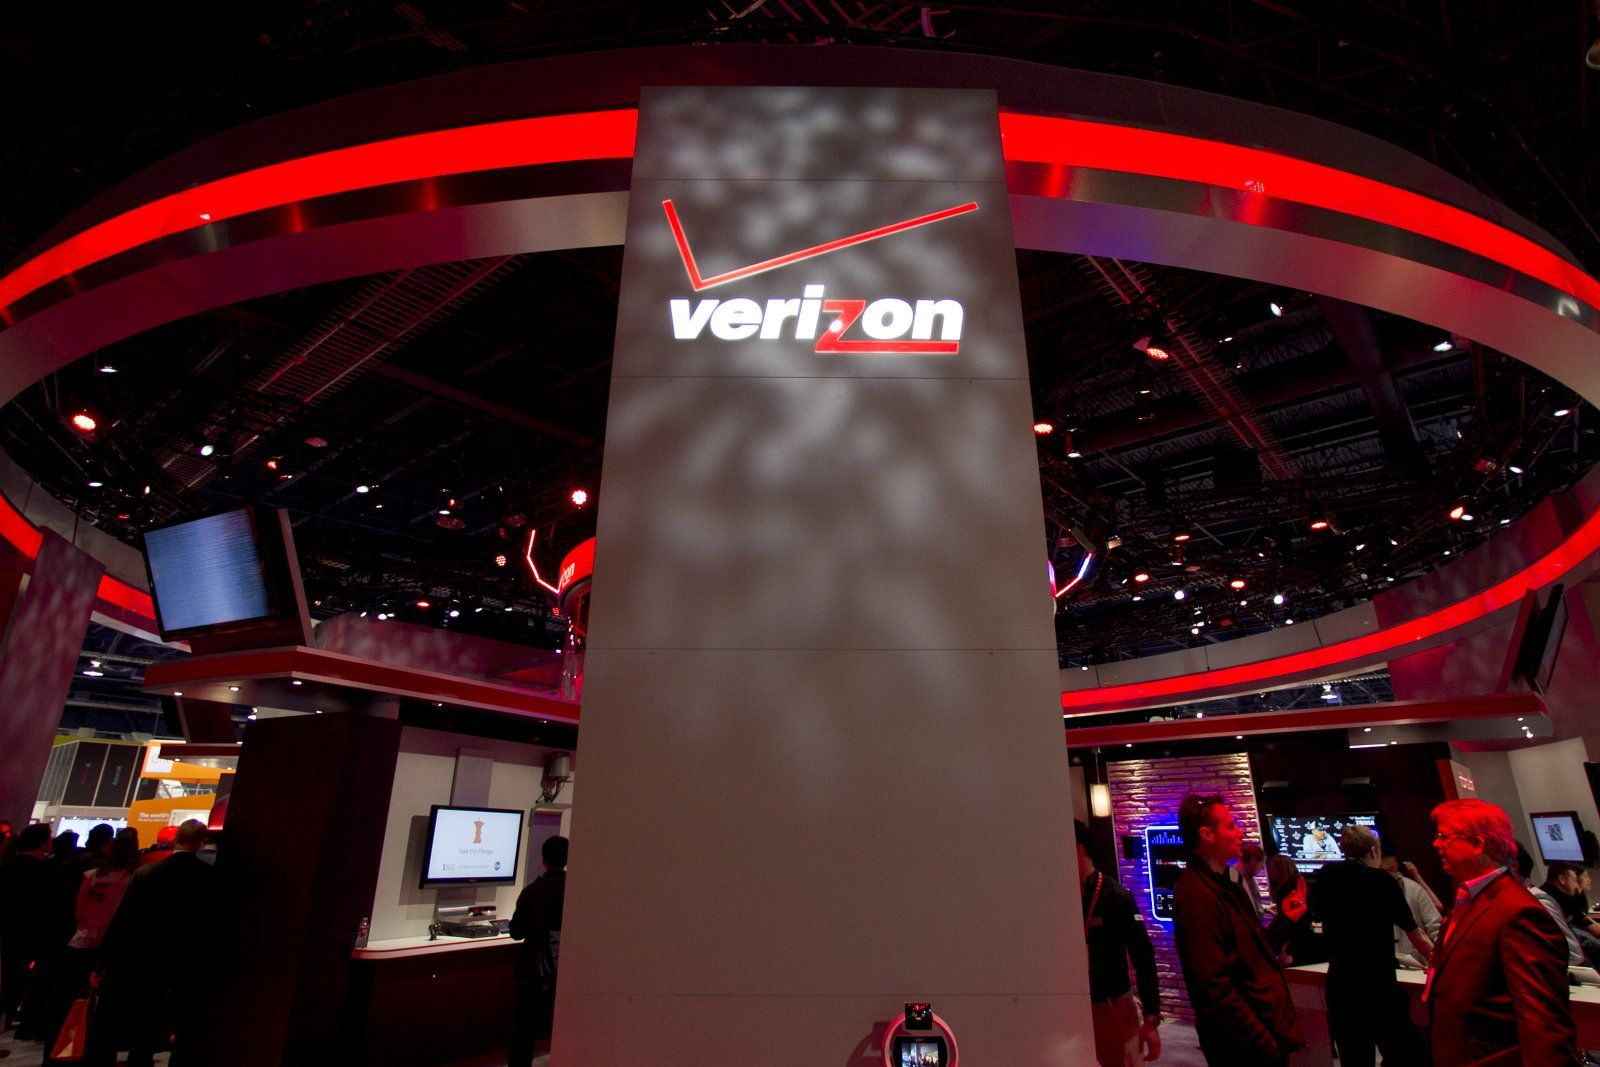 AT&T, Comcast and Verizon explain that they don't sell